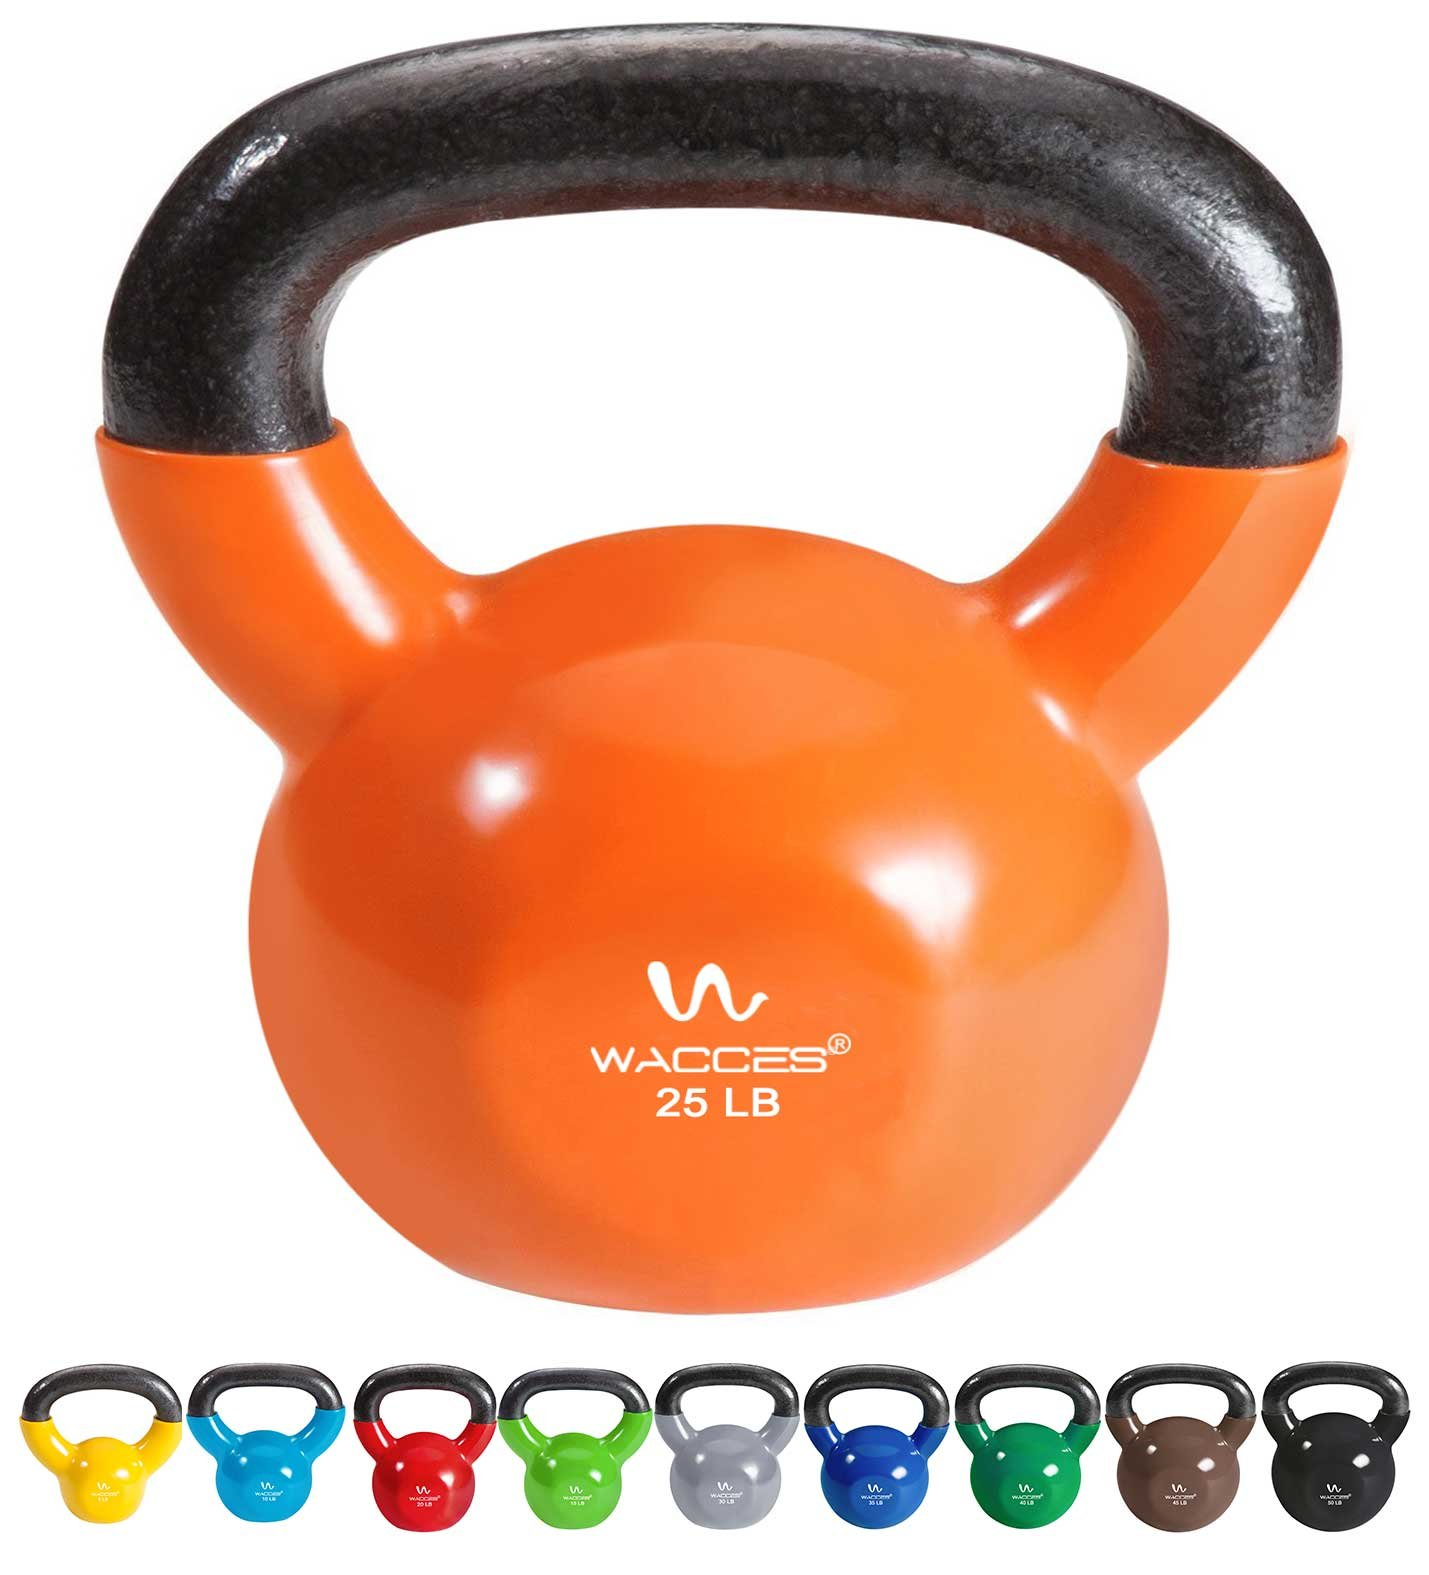 Wacces Single Vinyl Dipped Kettlebell for Croos Training, Home Exercise, Workout 25LB